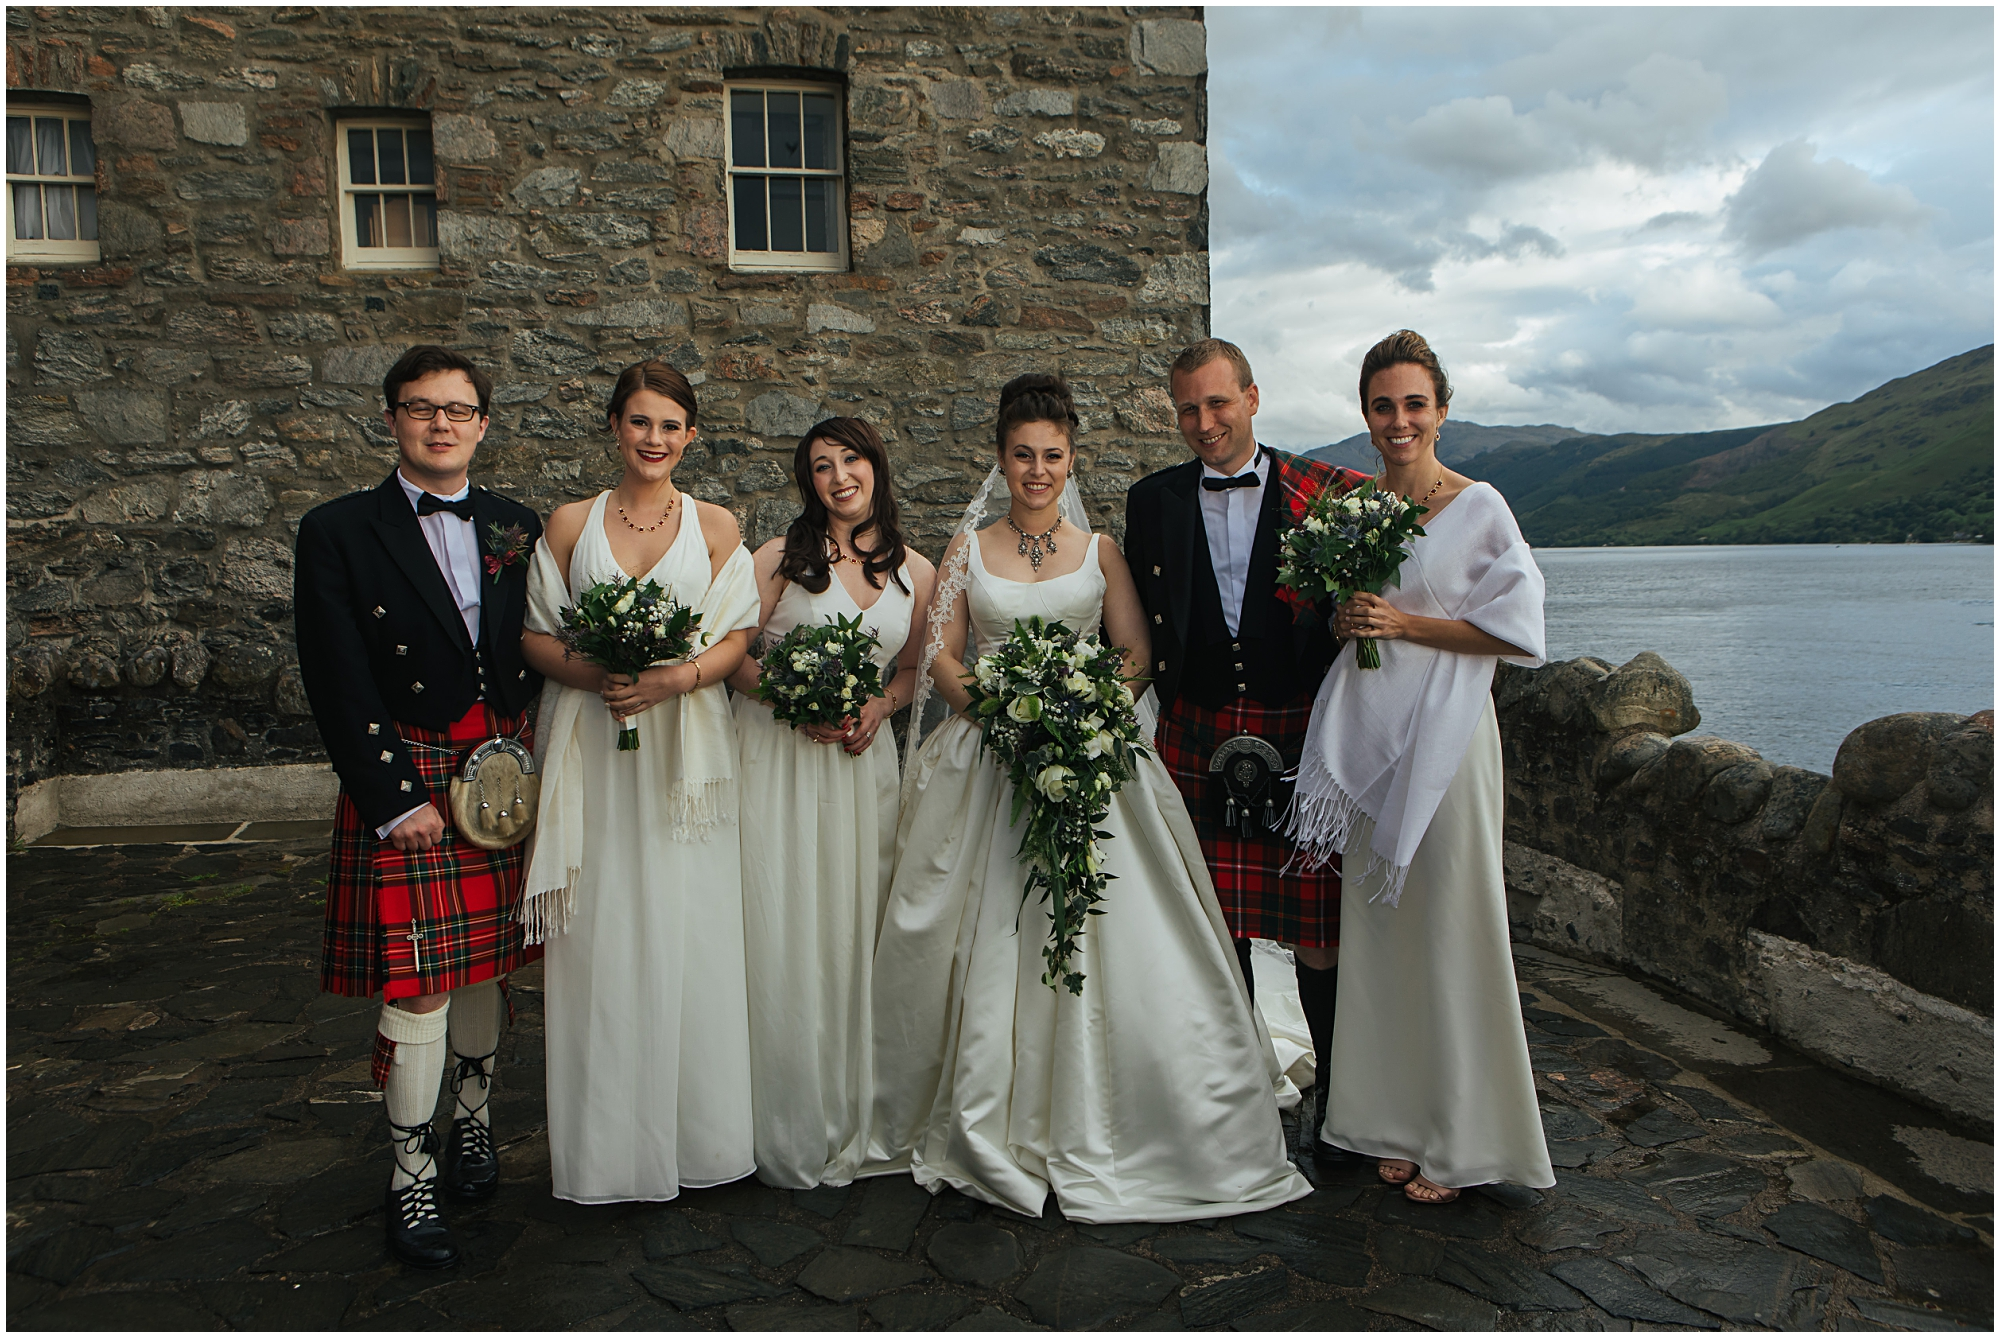 Eilean Donan Castle wedding photographer, eilean Iarmain hotel wedding photography